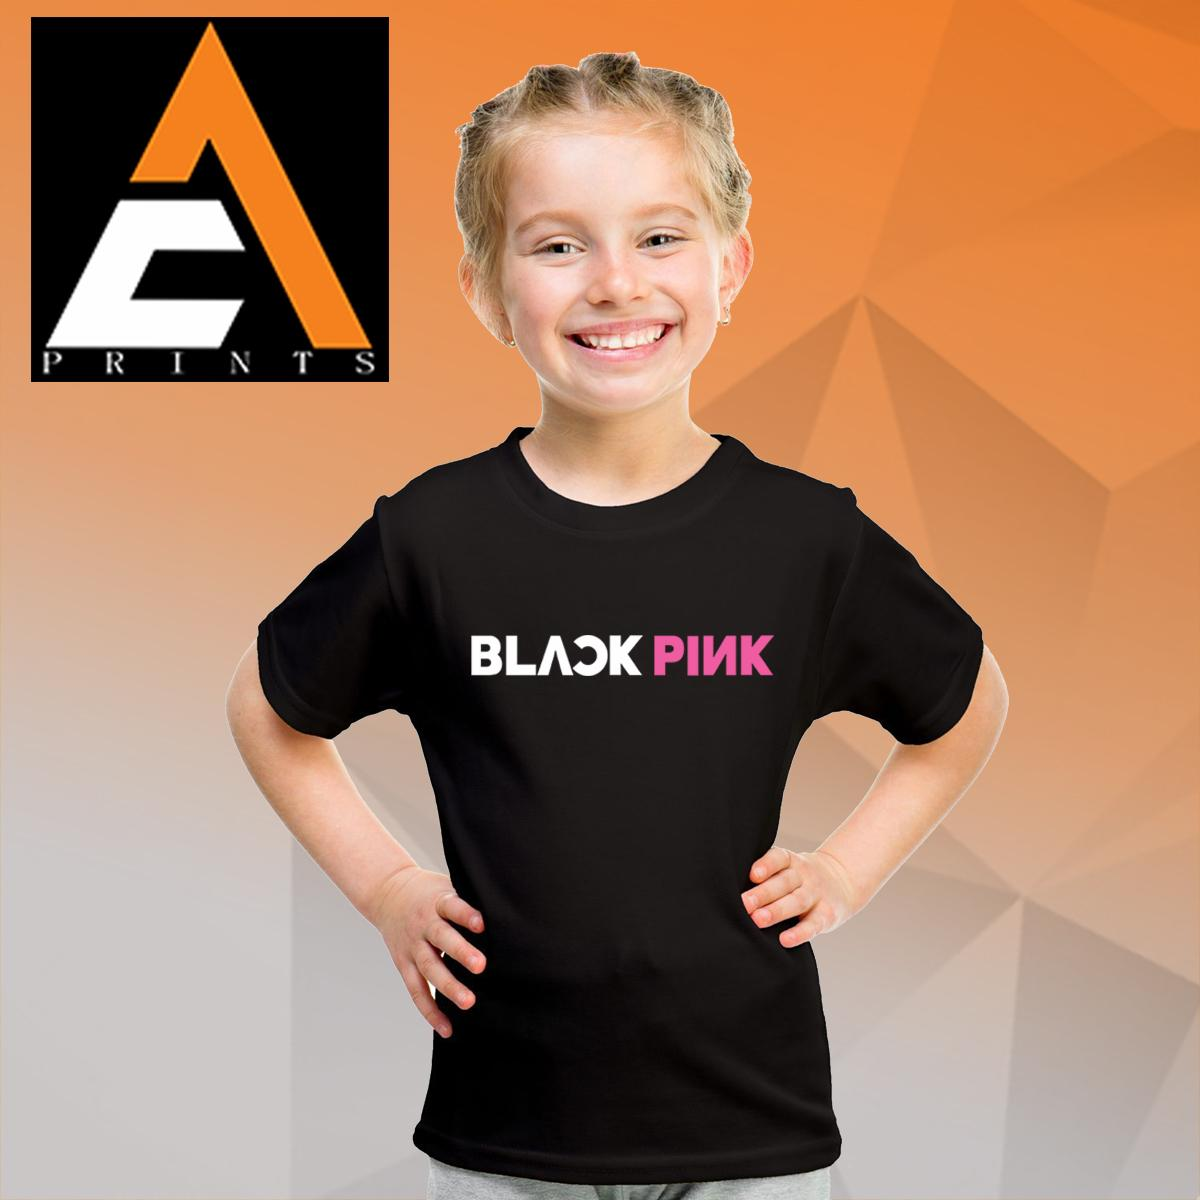 448d0757 Boys Shirts for sale - T-Shirts for Boys Online Deals & Prices in ...